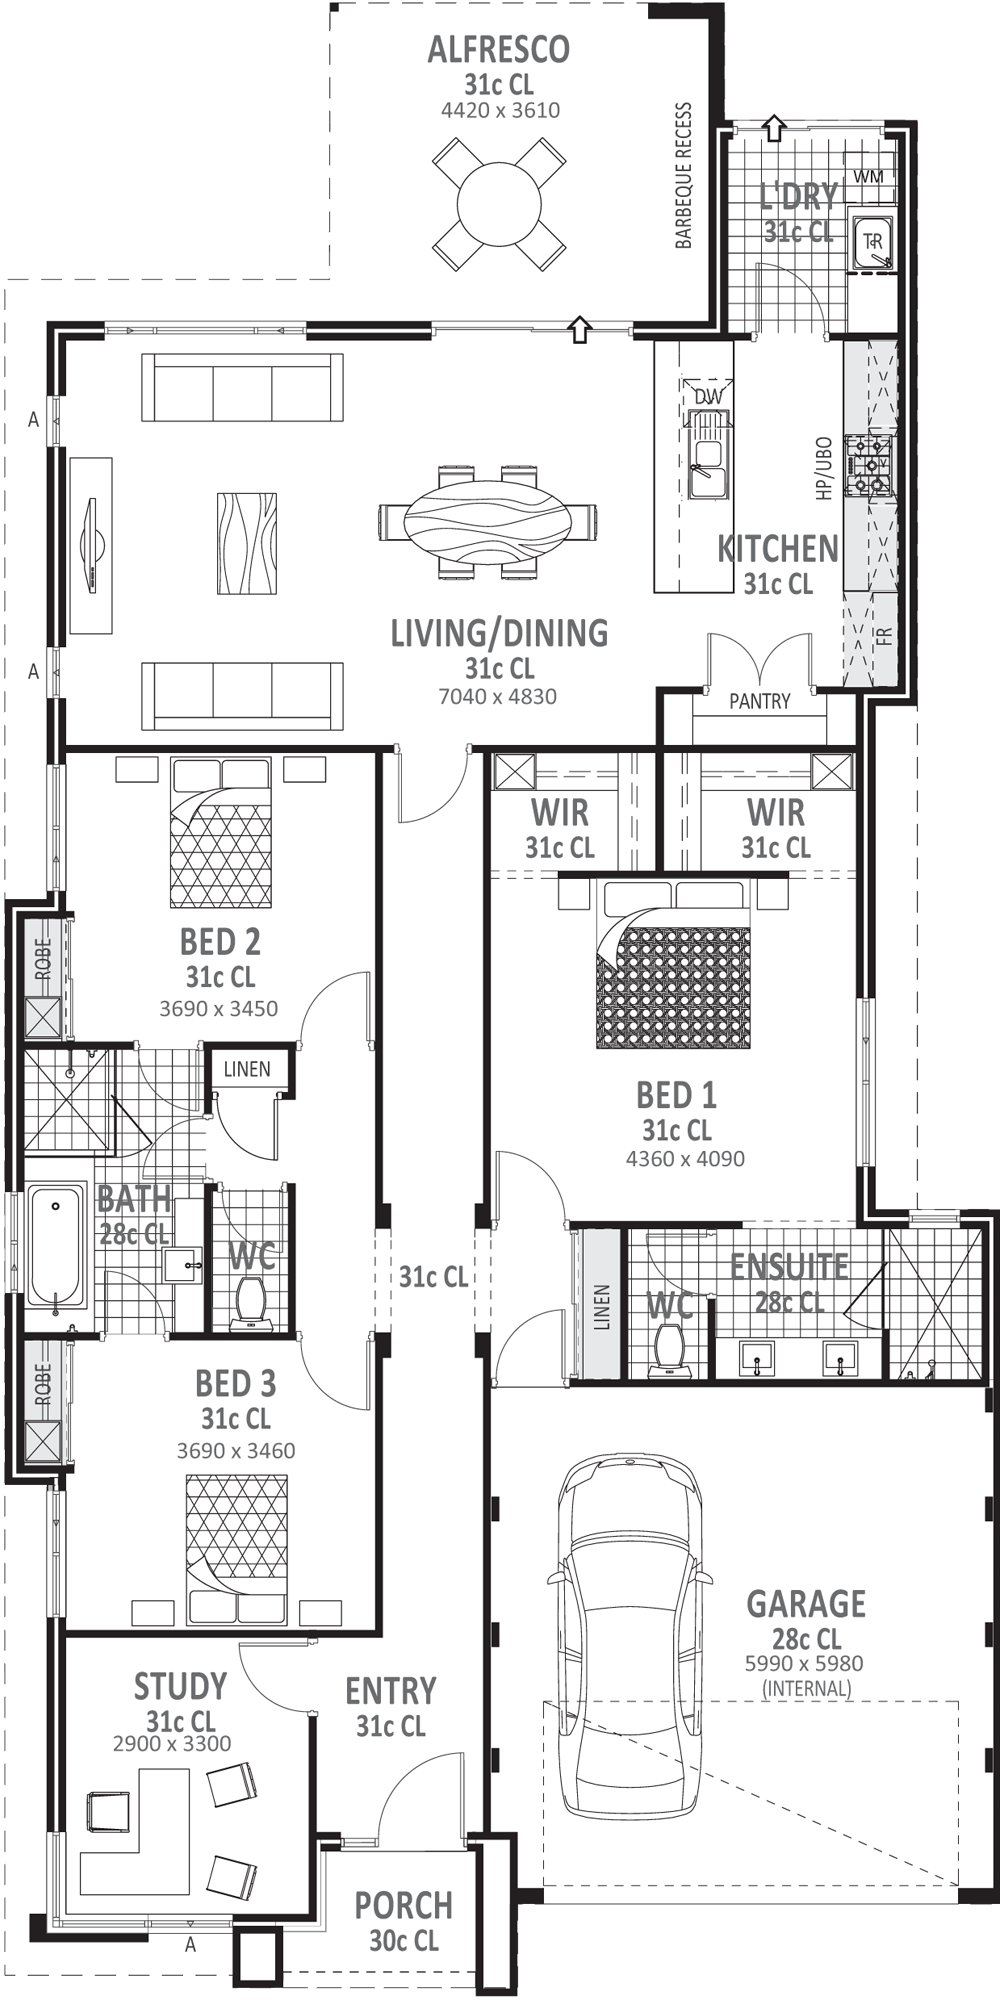 Bedroom house plans. Drawing bed black and white jpg library library